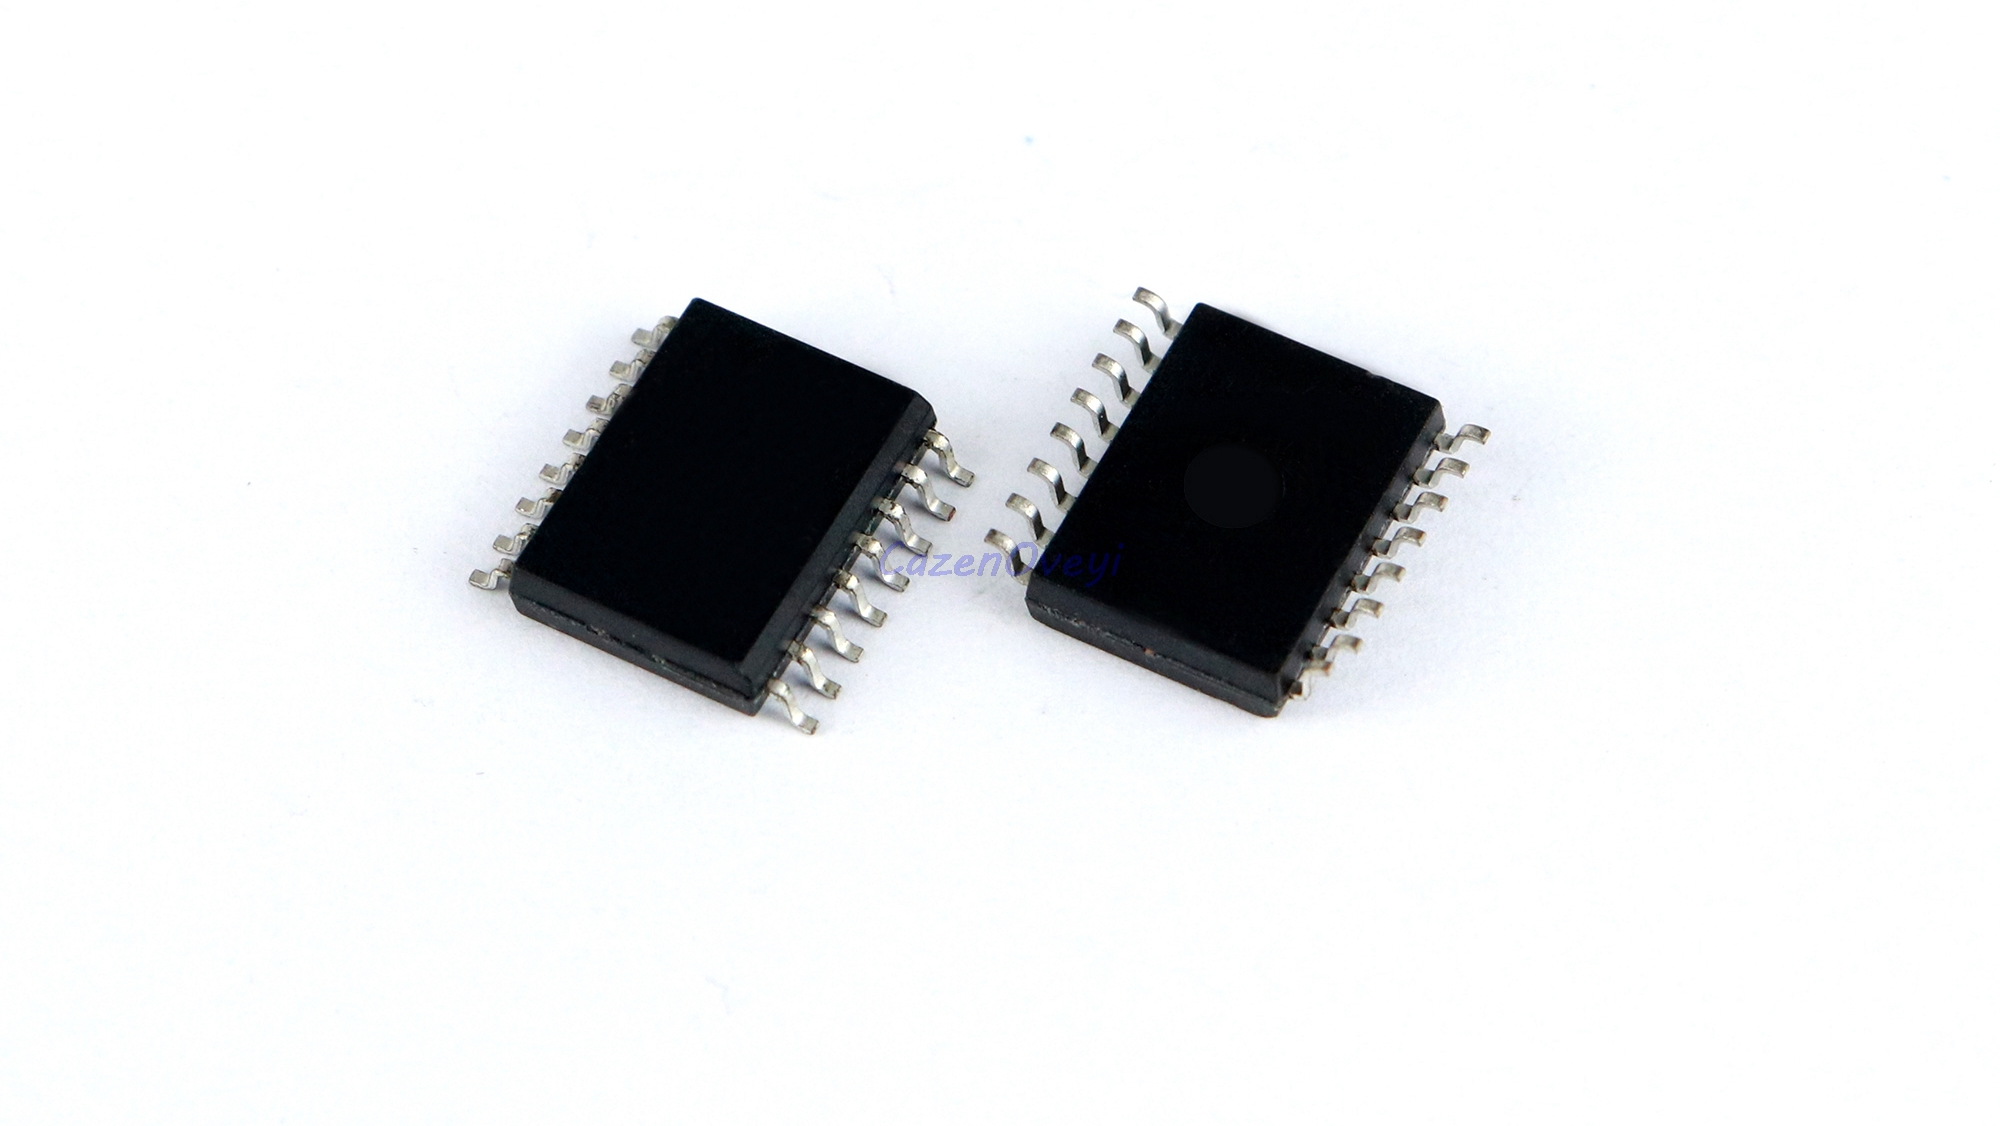 1pcs/lot PGA2311 PGA2311U PGA2311UA SOP16 In Stock